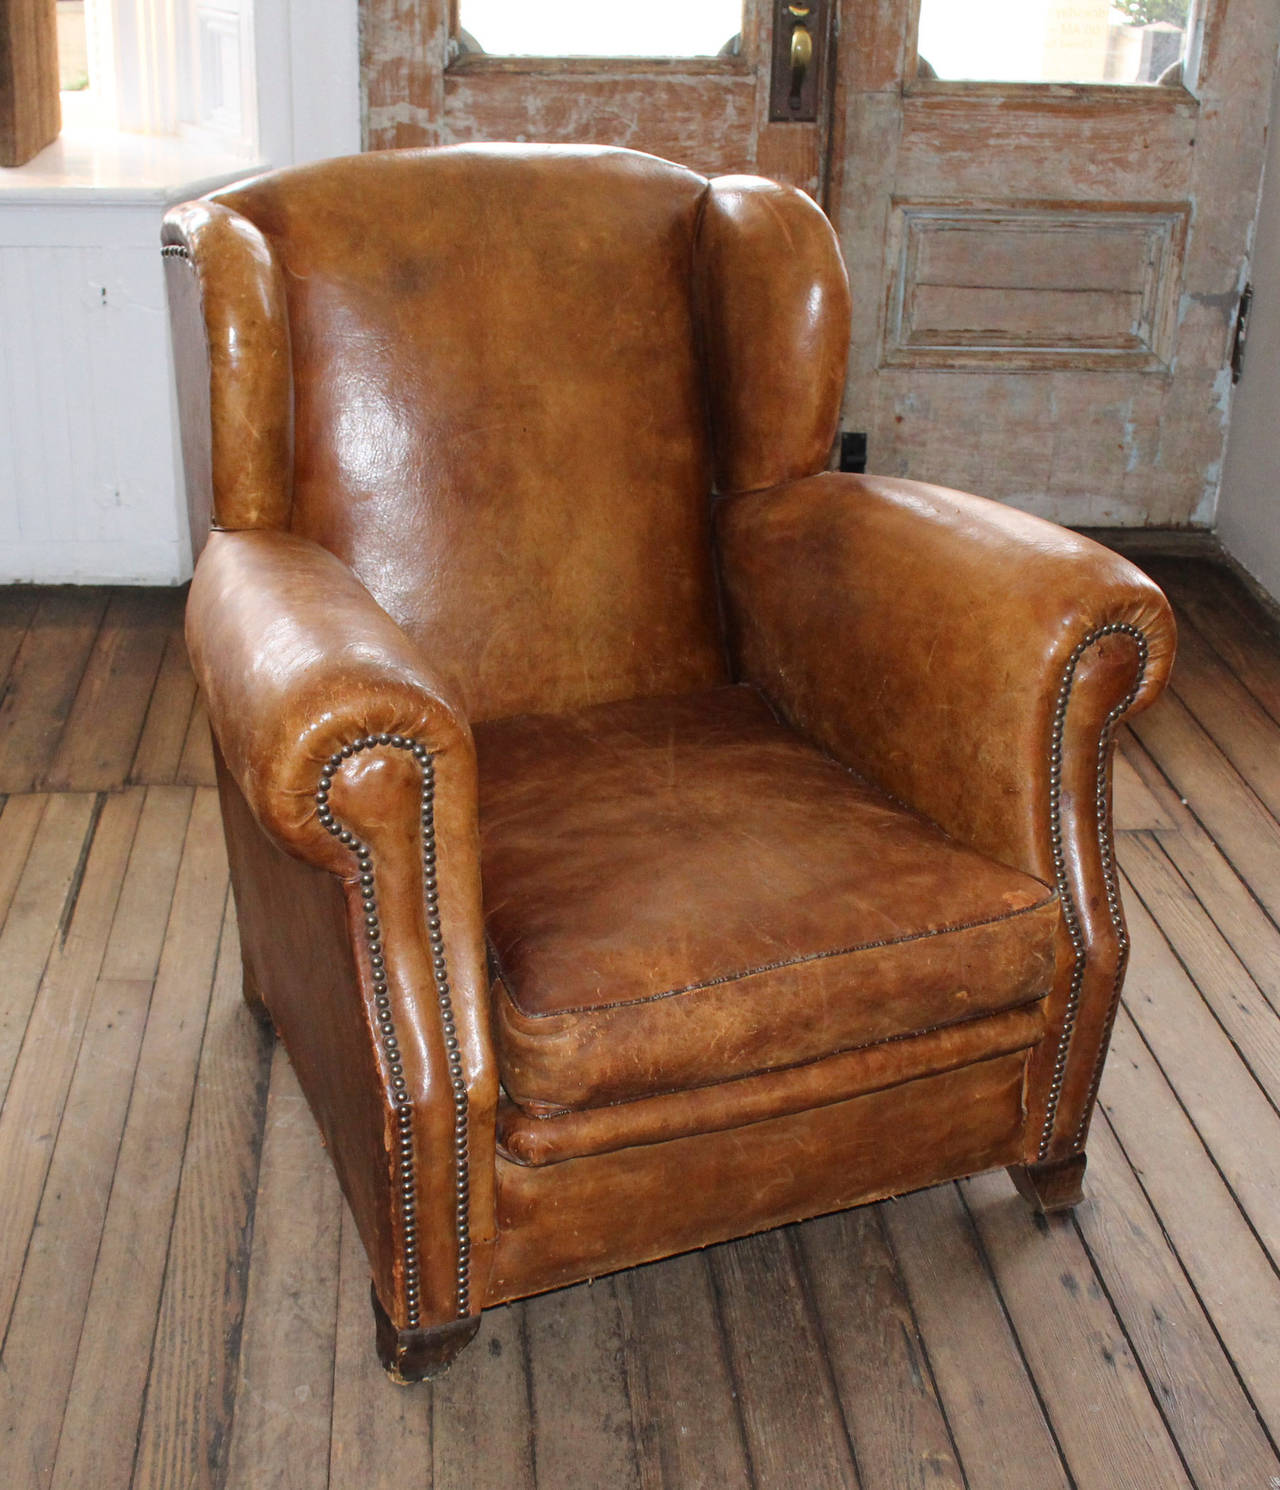 leather club chairs 28 images 741013 bauhaus leather club chair lot 741013 vintage pair of. Black Bedroom Furniture Sets. Home Design Ideas